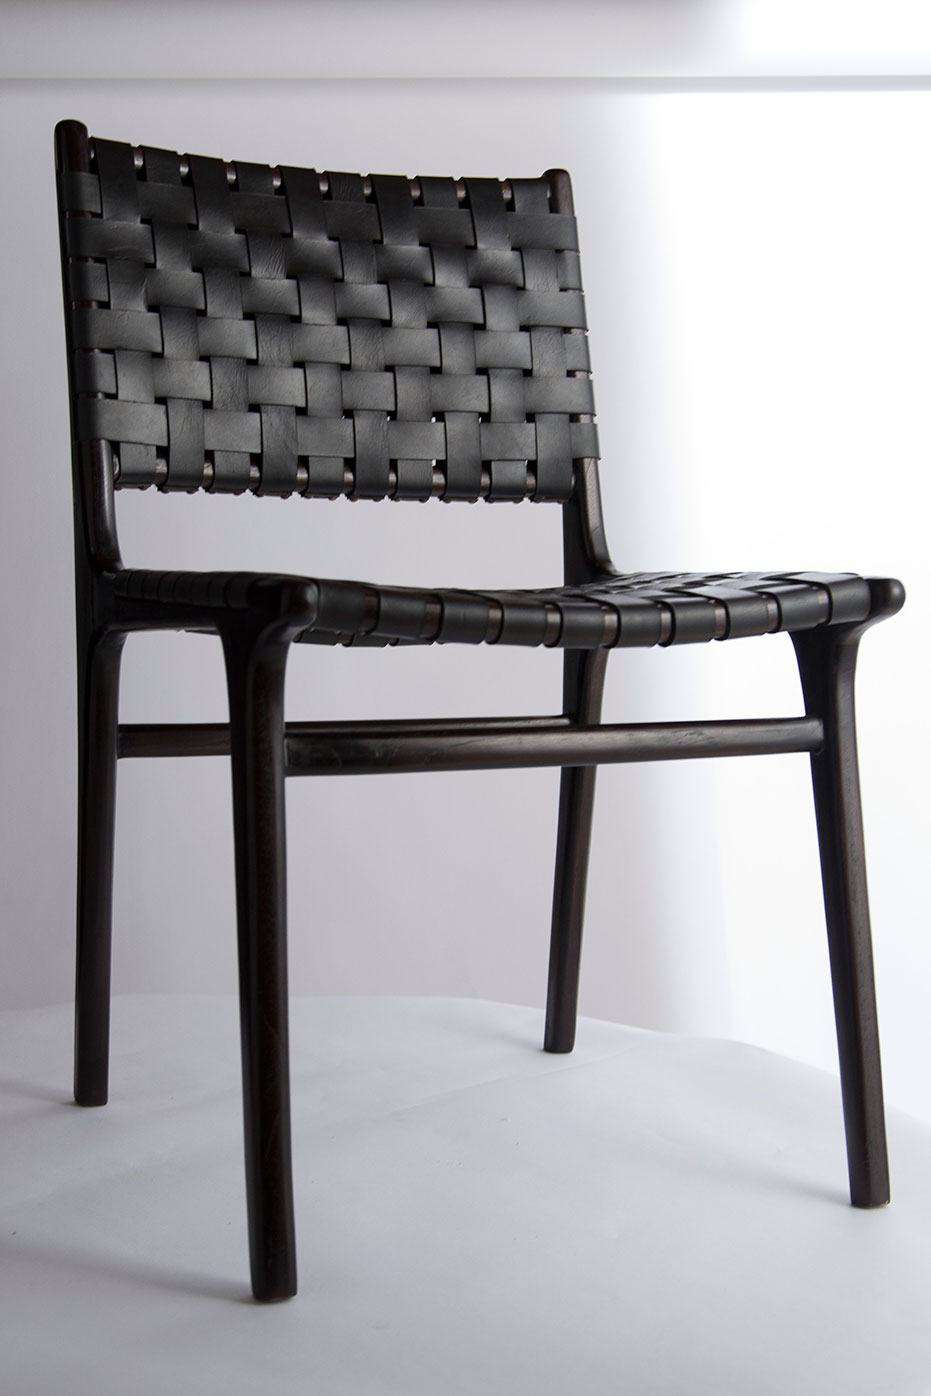 Modern Chair Series DoubleBacked Leather Woven Chair